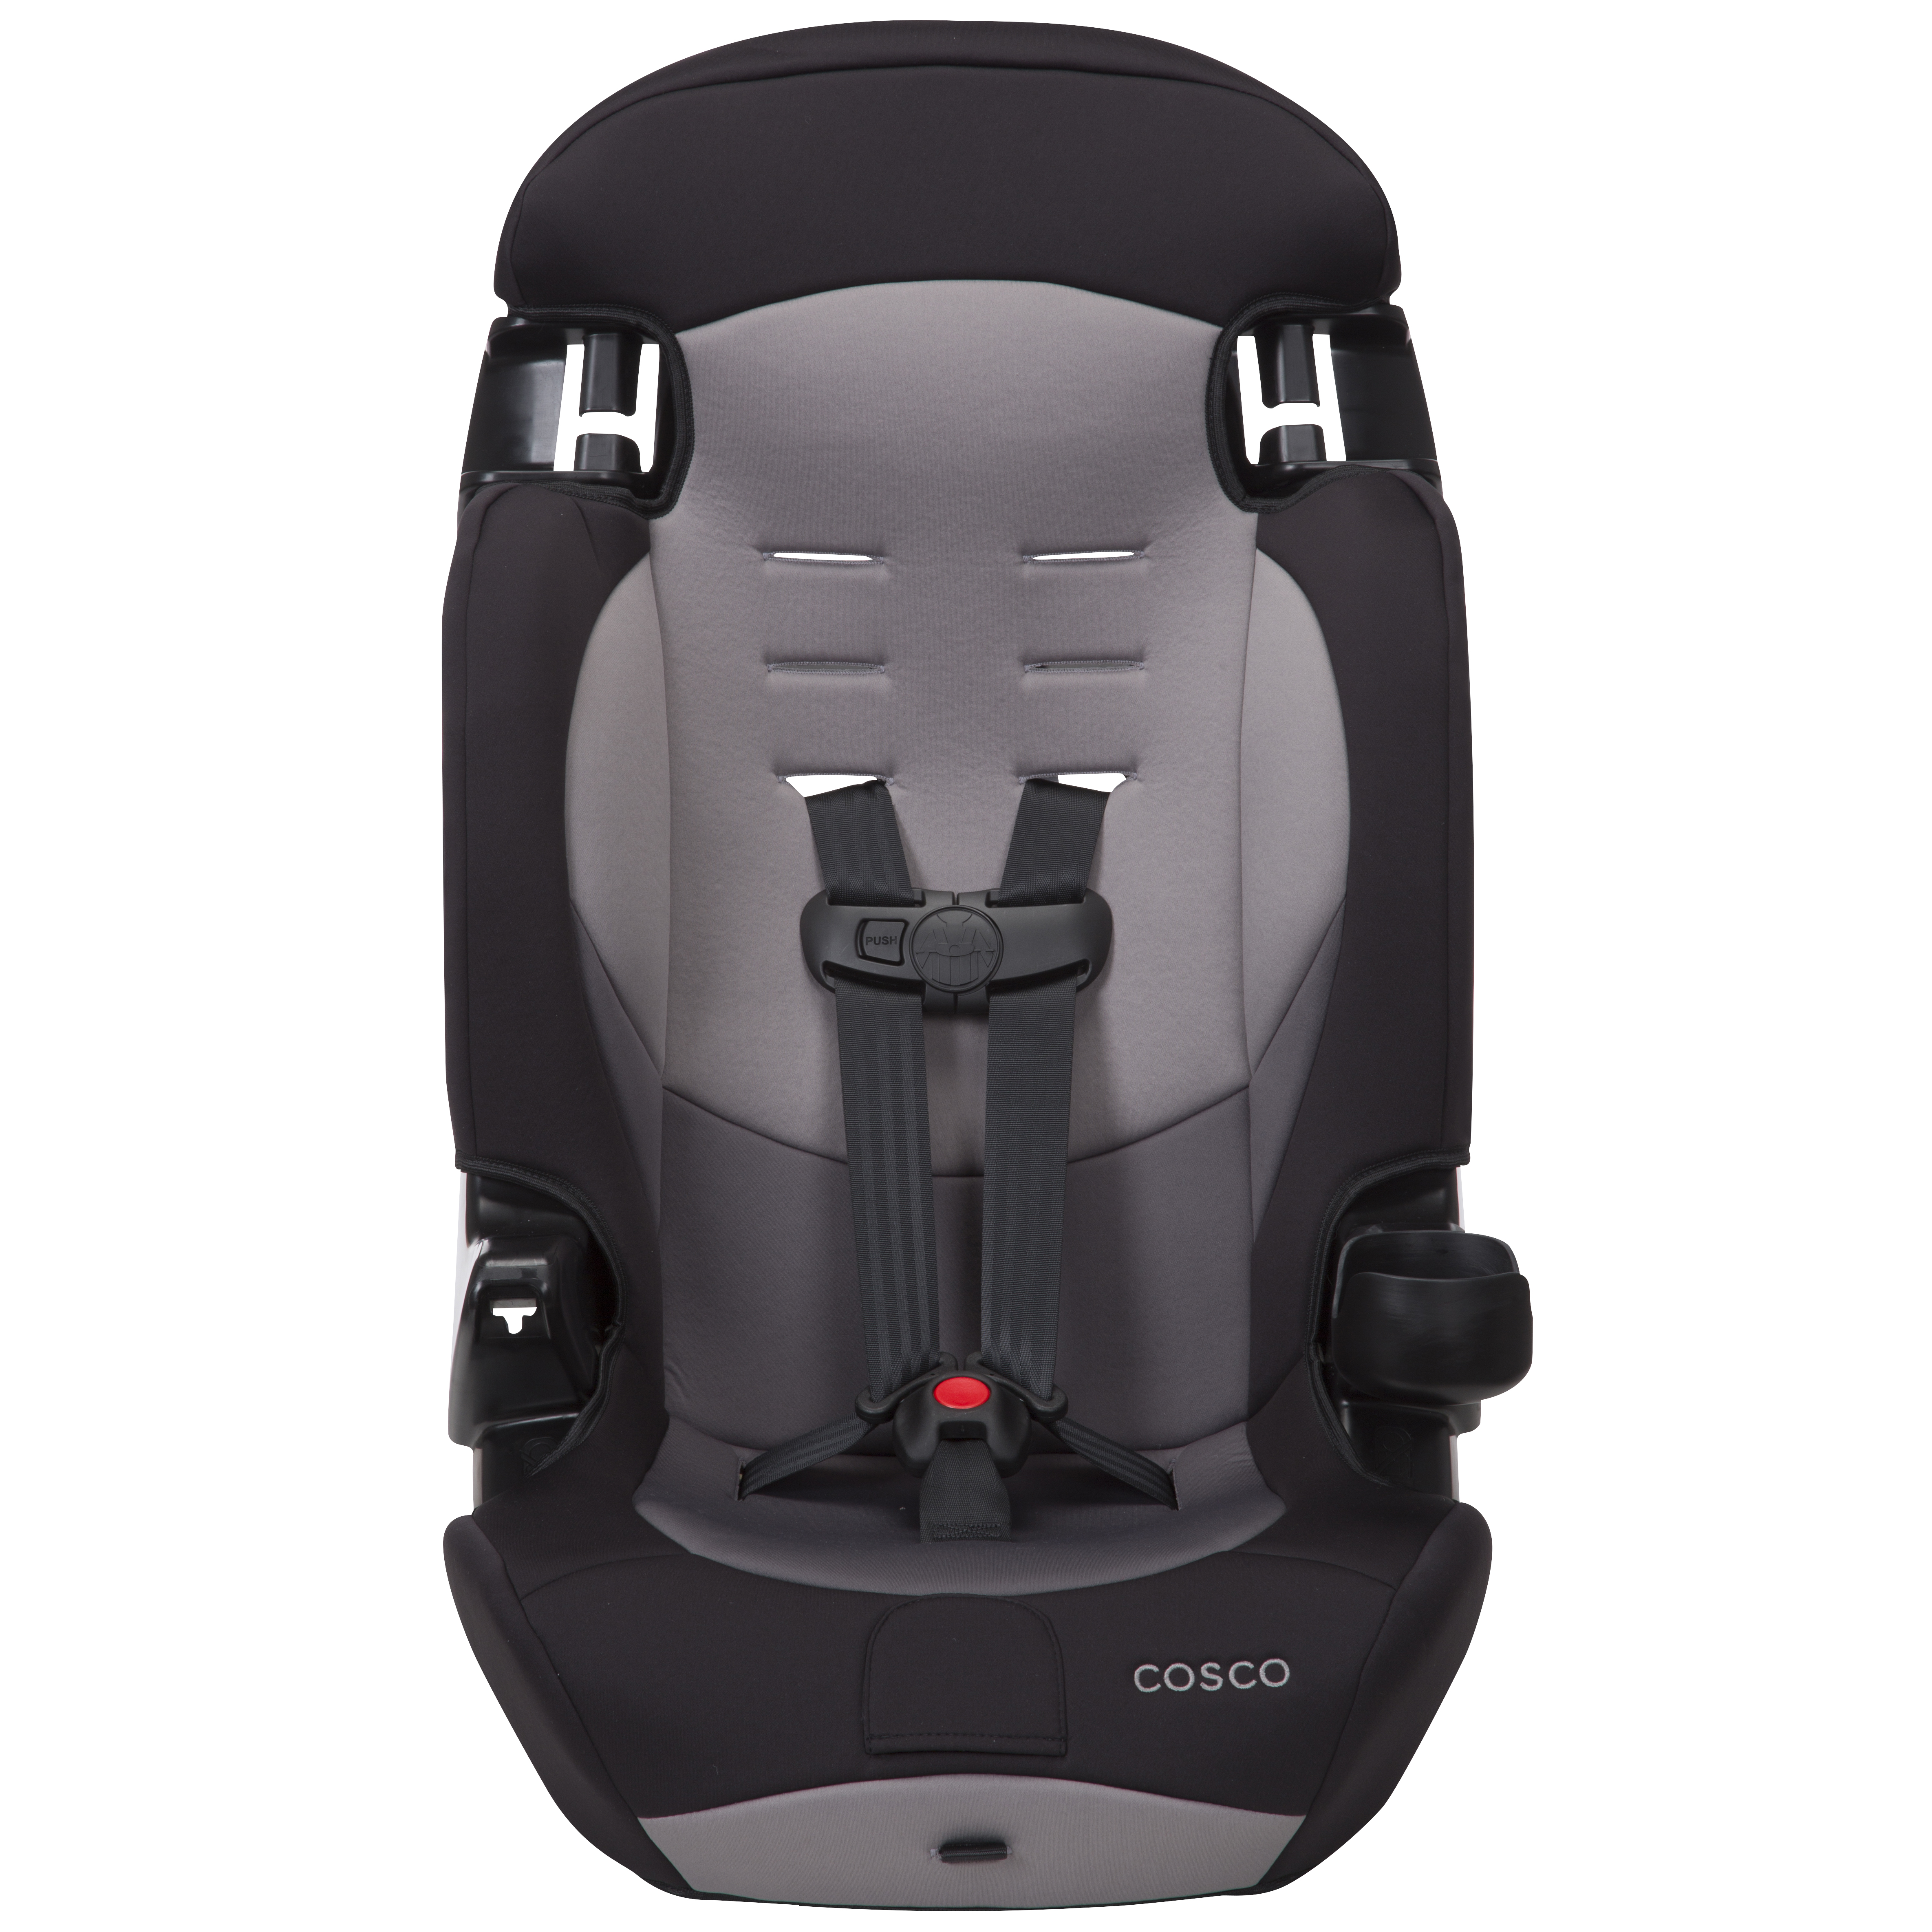 Cosco Finale DX 2-in-1 Booster Car Seat, Dusk